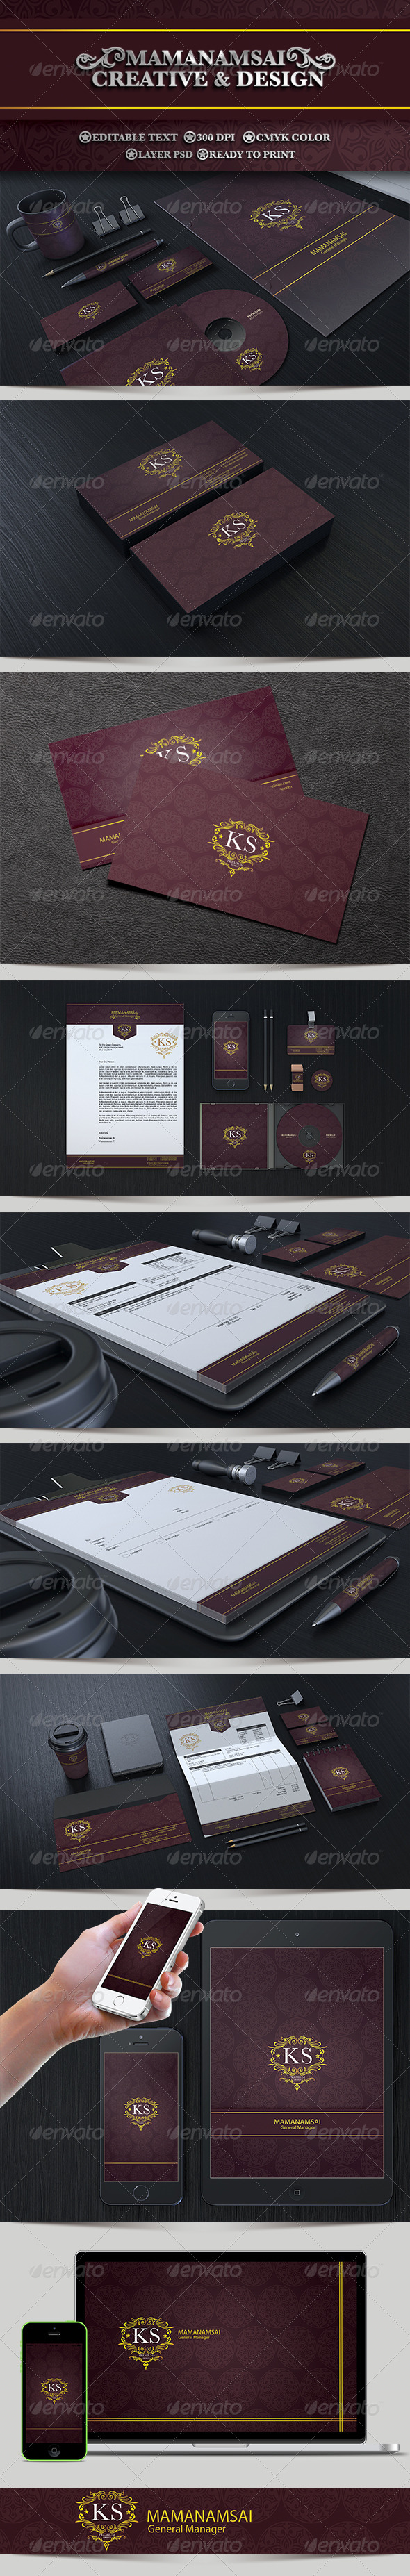 GraphicRiver Corporate Identity 7853615